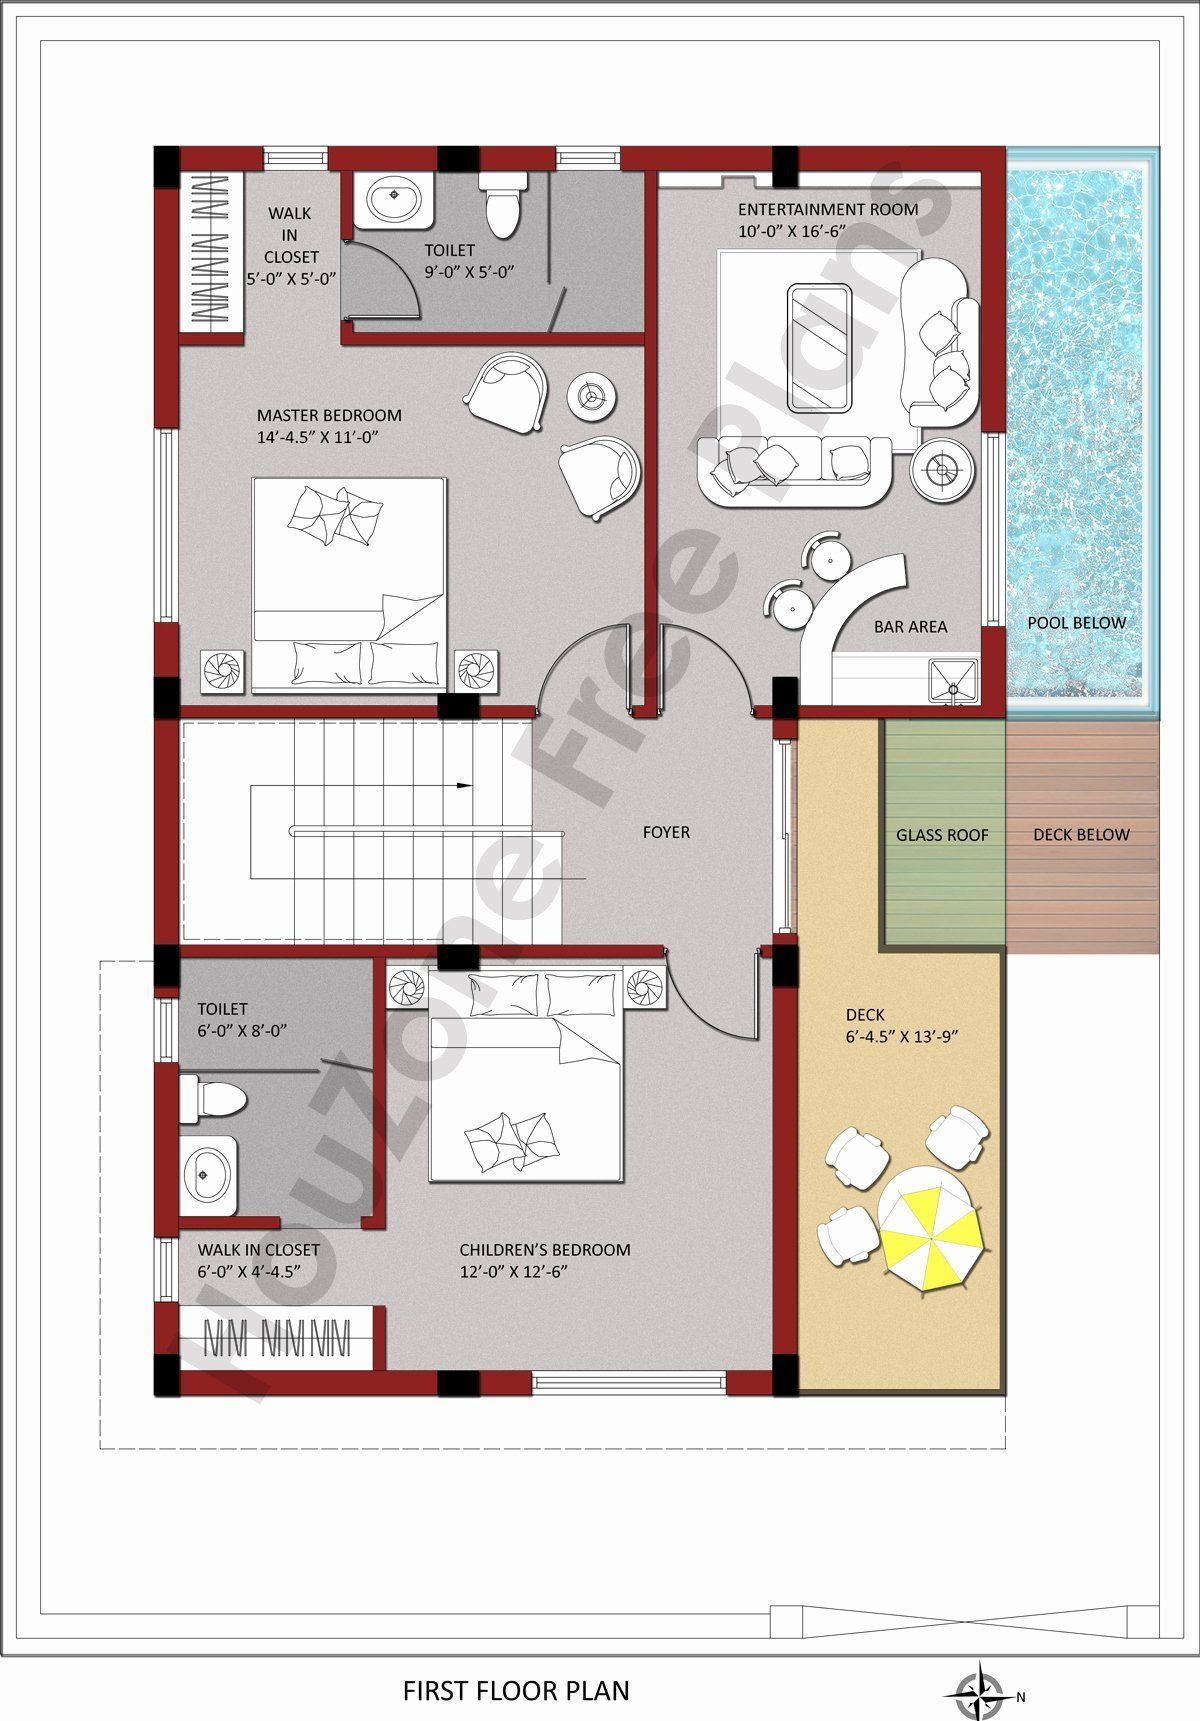 Home Design 200 Sq Yard Best Of 3 Bedroom Duplex House With Swimming Pool In 200 Sq Yards Pool House Plans House Plans Custom Design House Plans